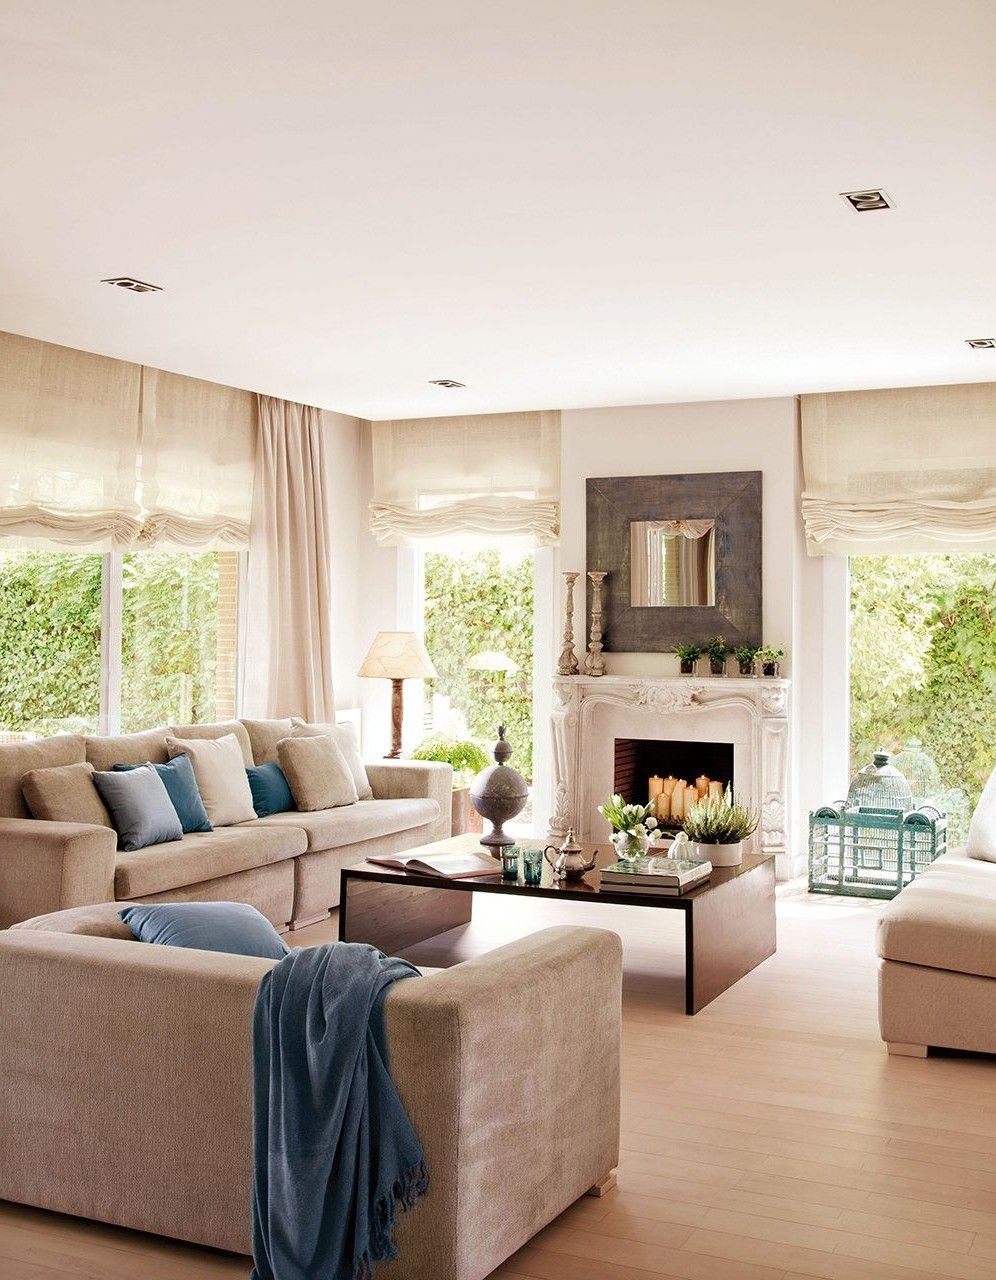 30 Elegant Small Living Room Design Ideas To Make The Most Of Your Space Tags Small Liv Living Room Decor Modern Small Living Rooms Small Living Room Layout